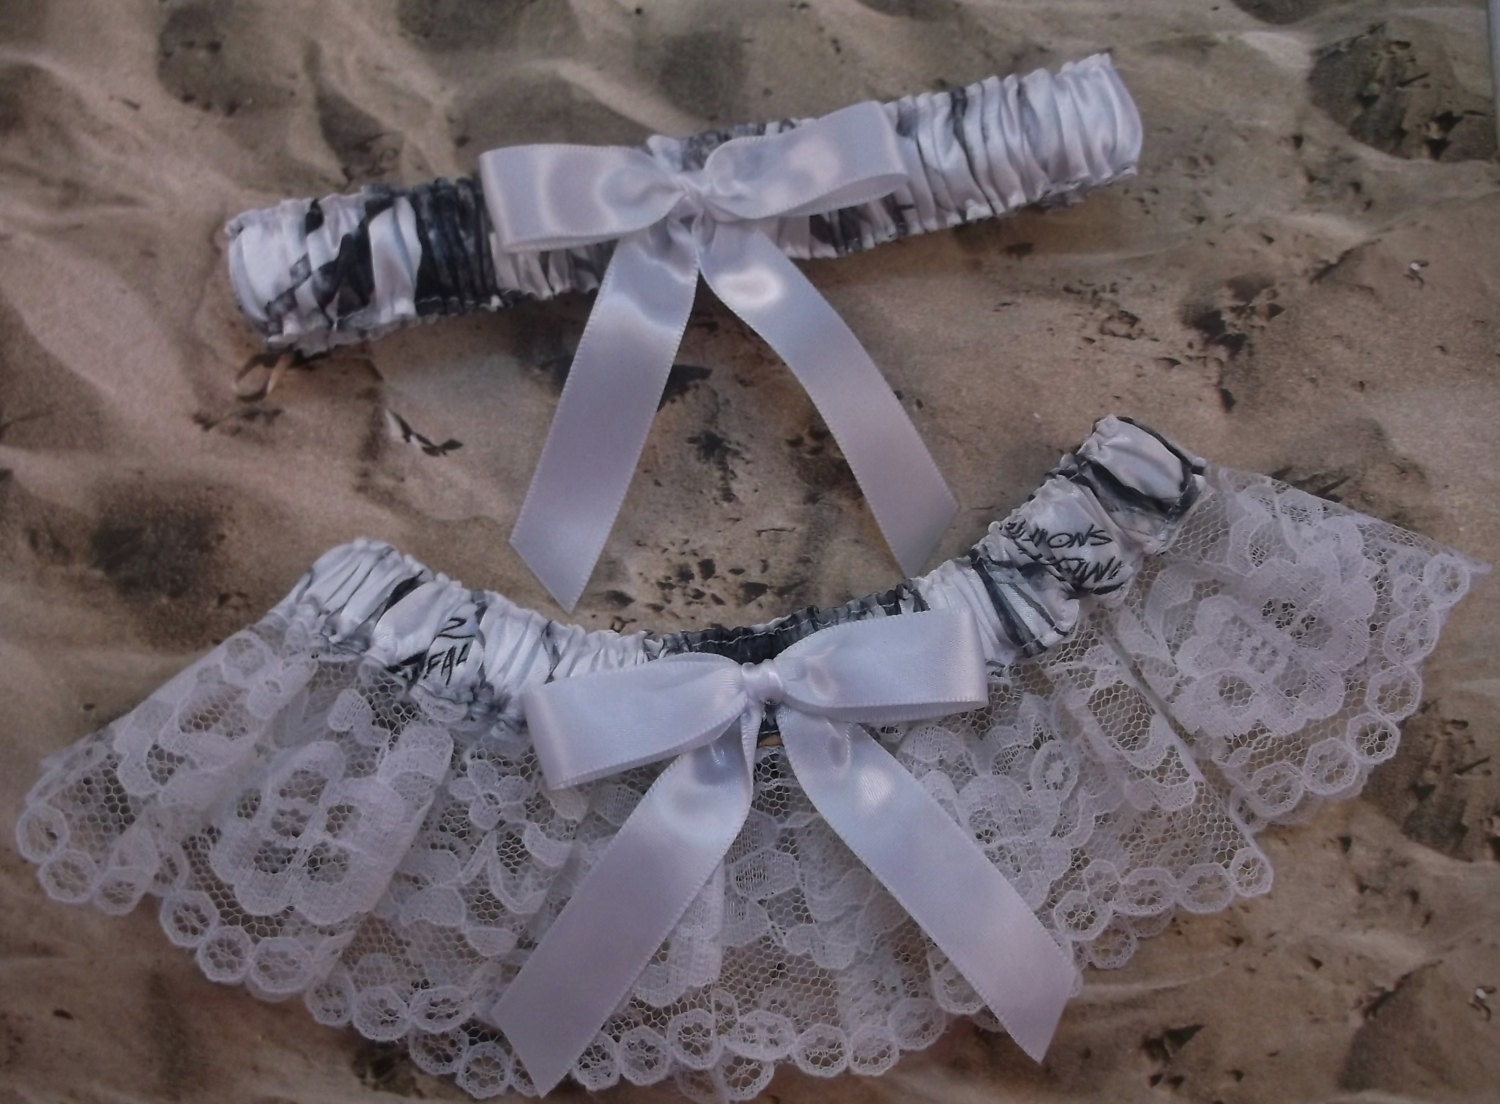 Snow camo camouflage white ribbon lace bridal wedding garter for Camo ribbon for wedding dress